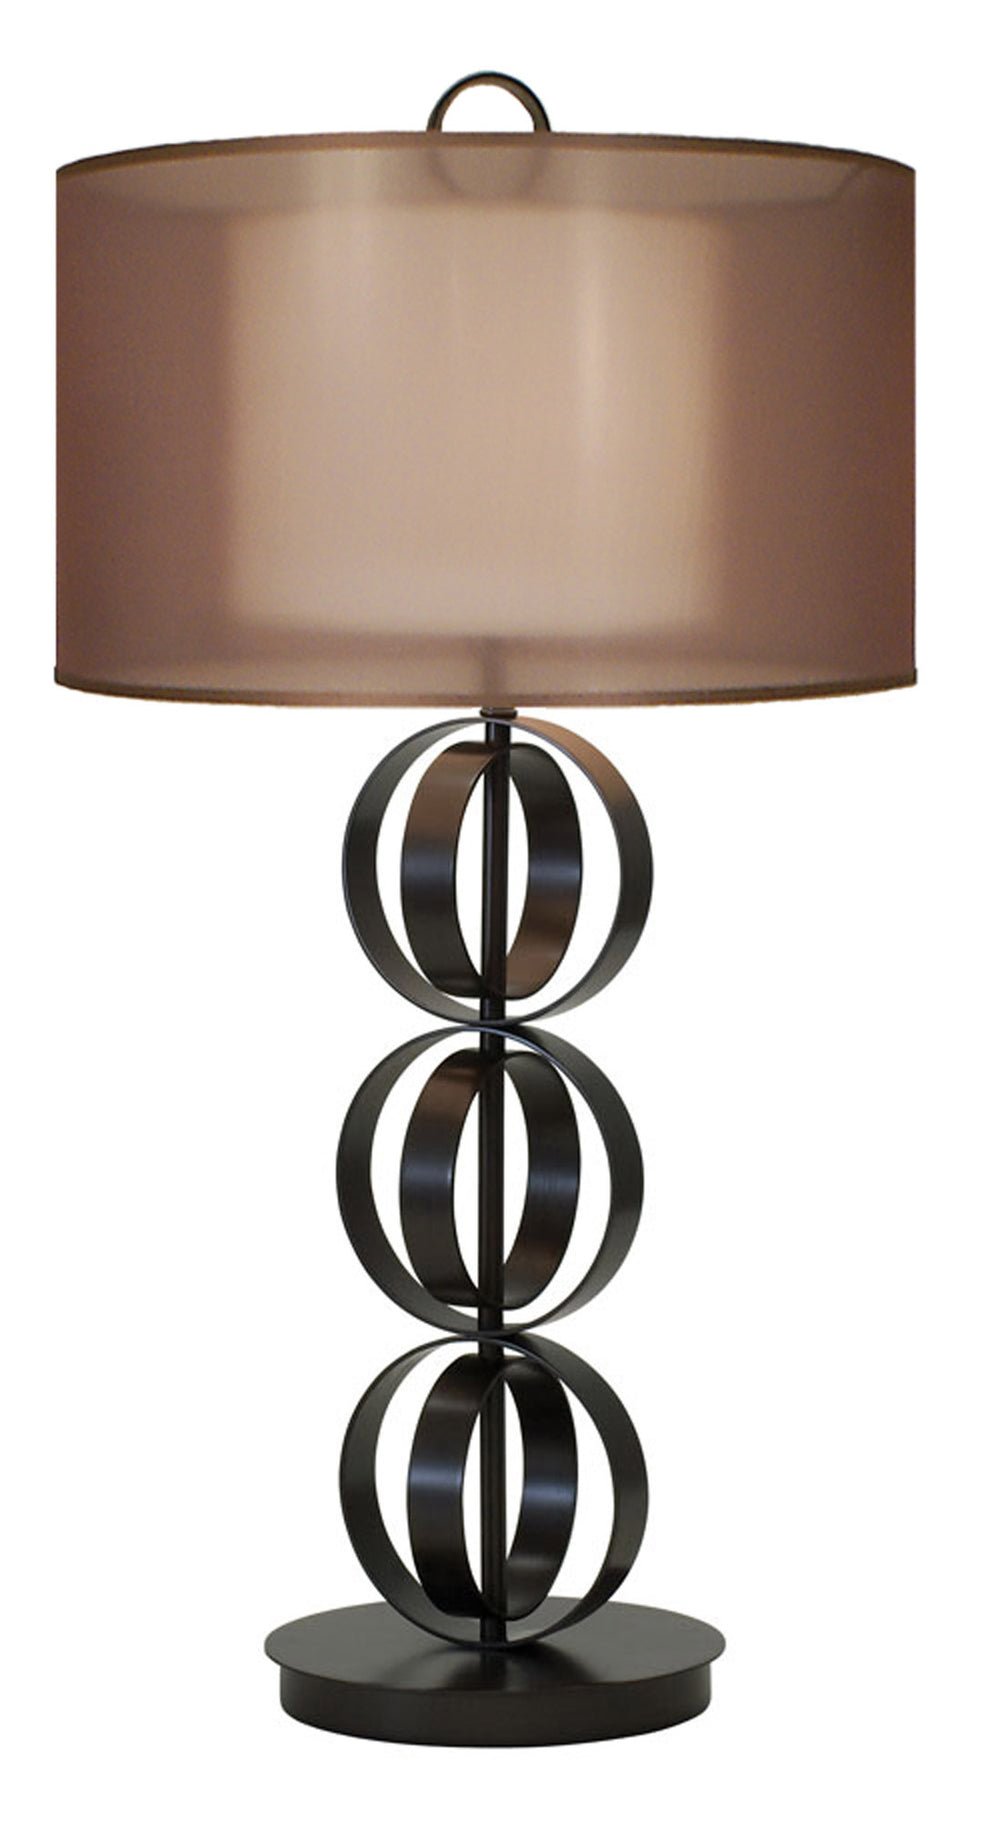 Compass Table Lamps by Thumprints